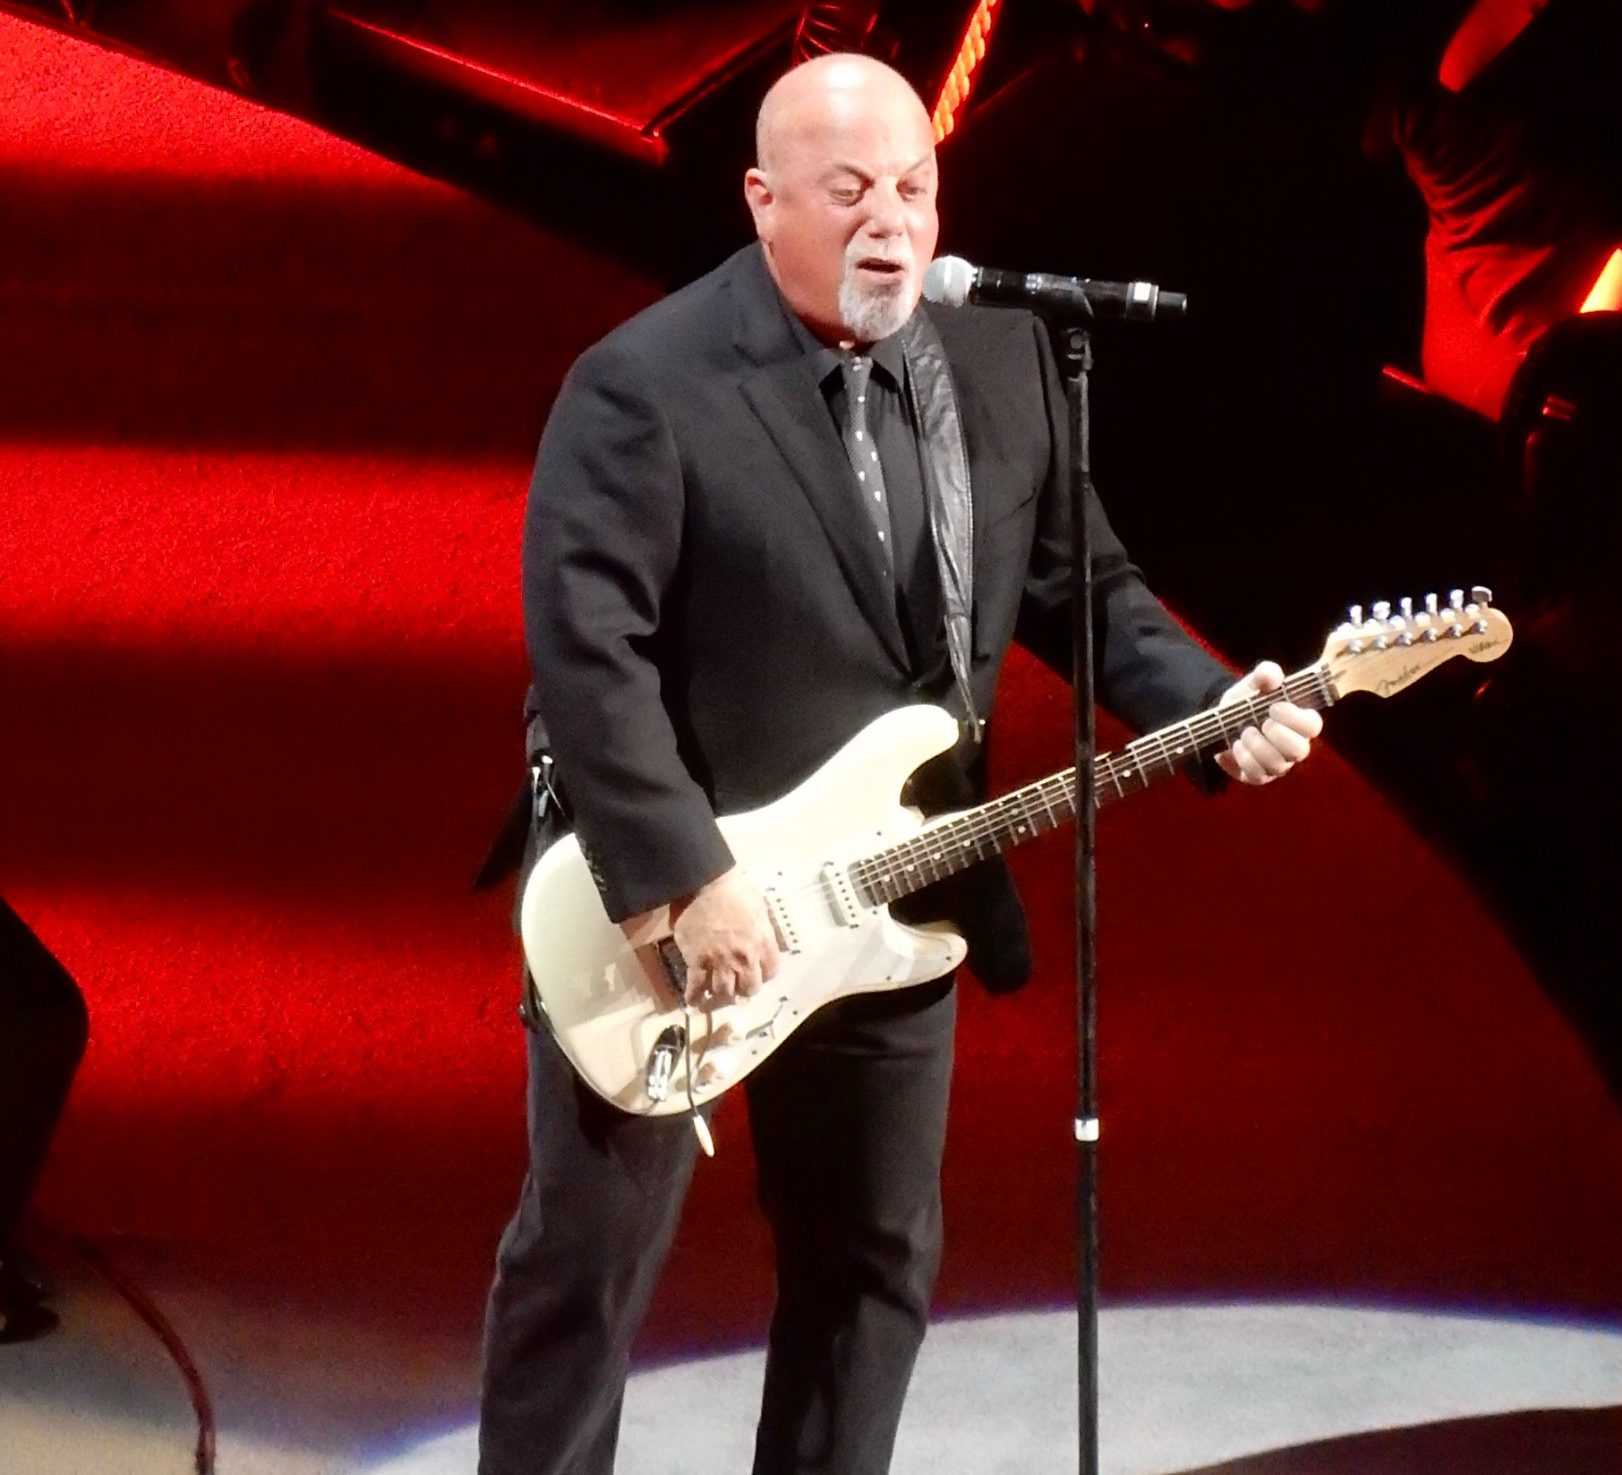 26388531171 547cbb230e k e1621427691201 20 Things You Probably Didn't Know About Billy Joel